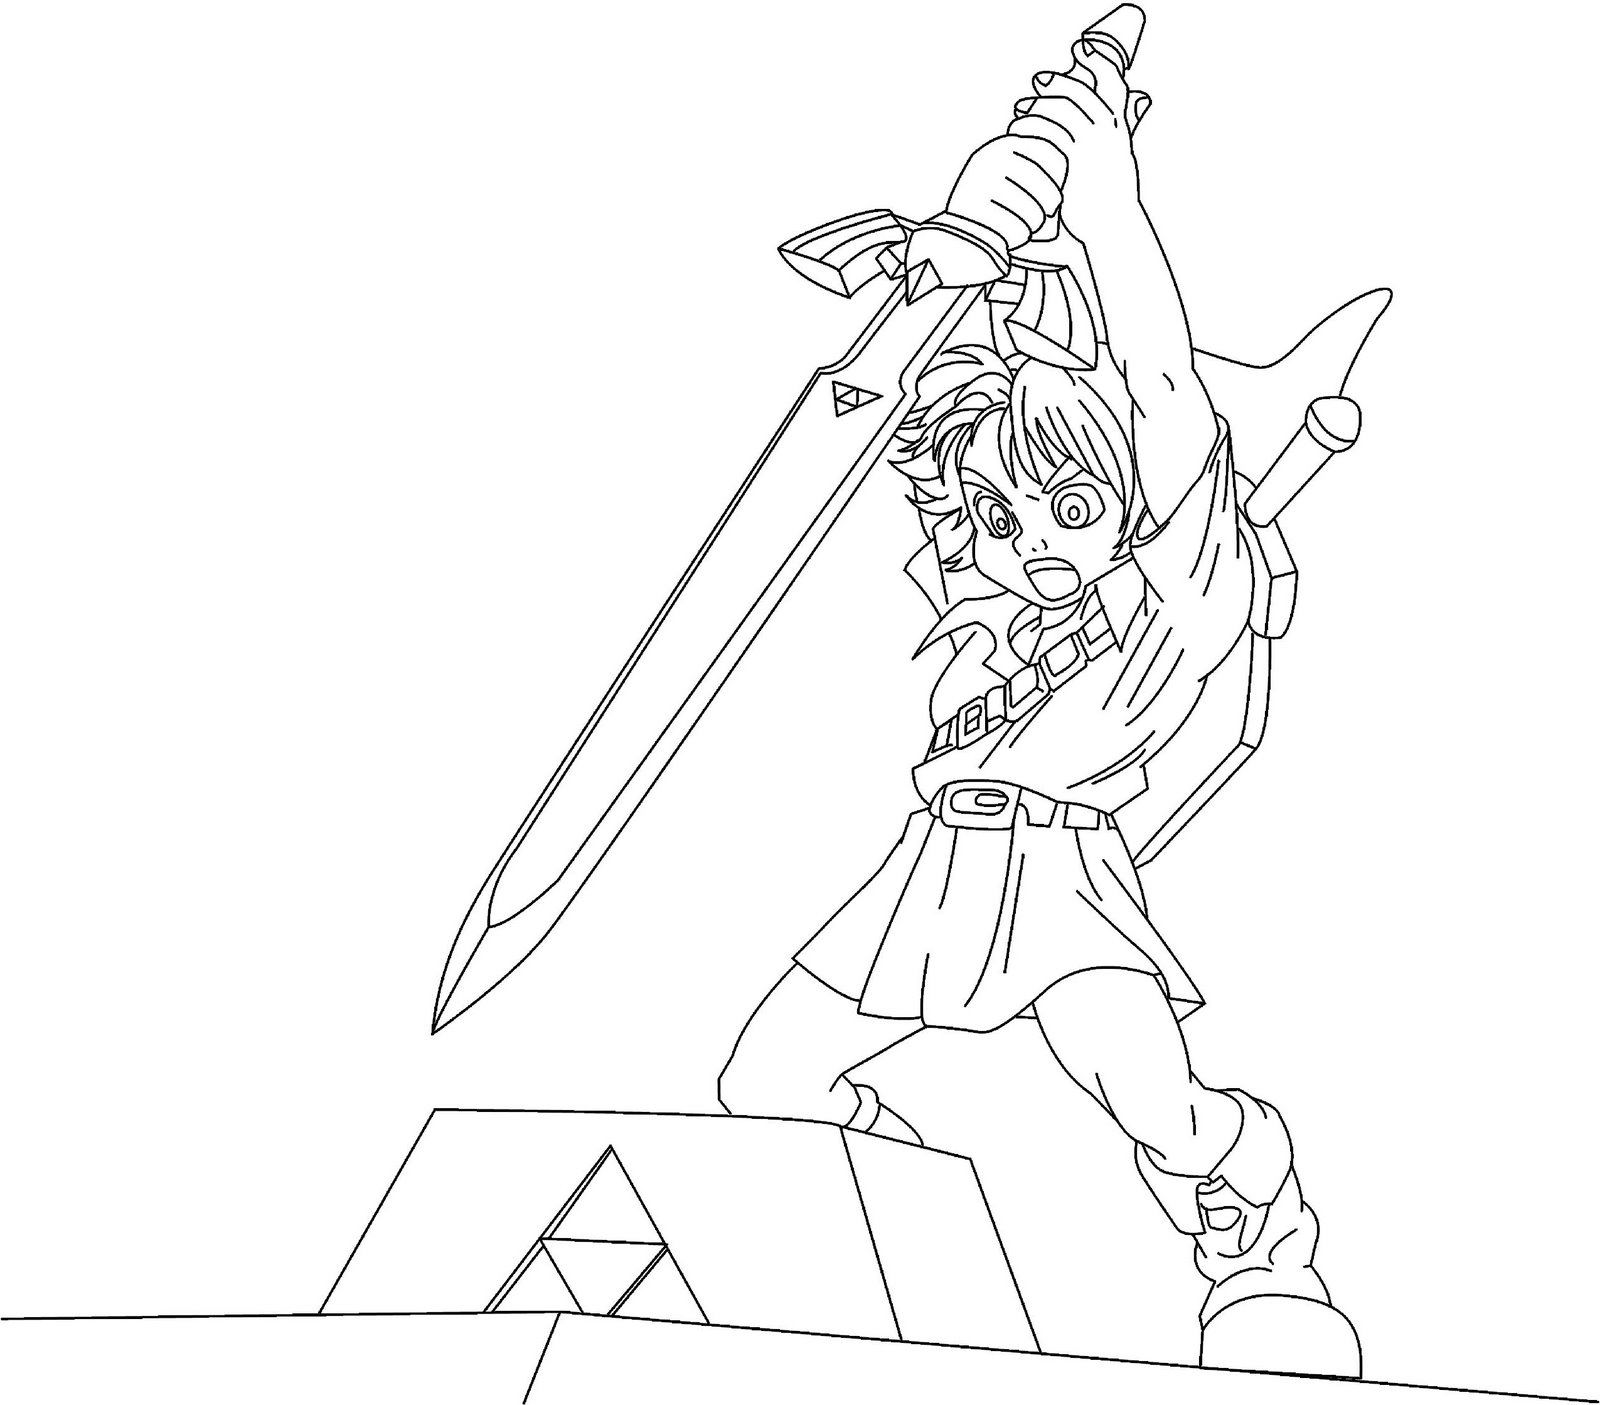 zelda skyward sword coloring pages - photo#44